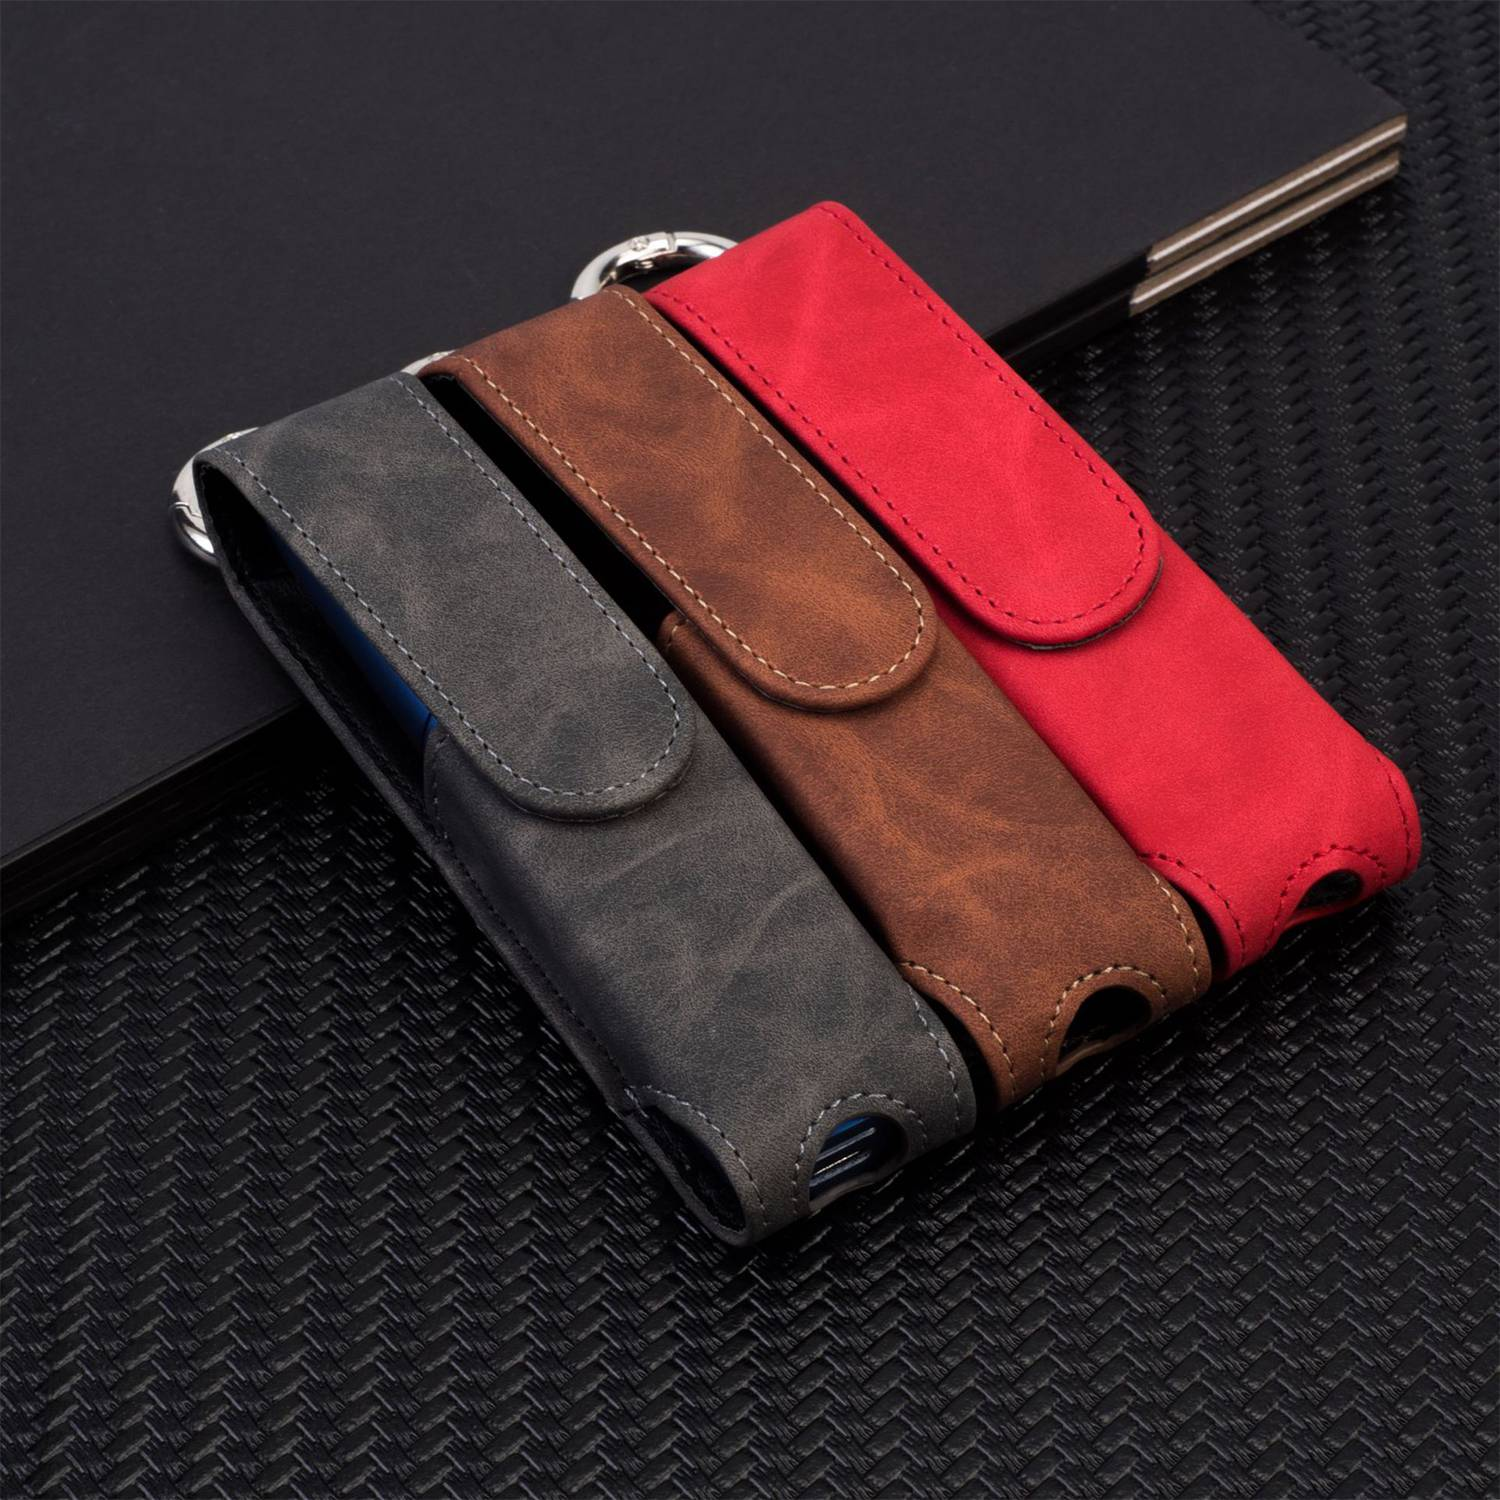 Soft Fabric Leather Bag For Case For Iqos 3 Multi Cigarette Accessories Carrying Protective Case Cover For Iqos 3 Multi